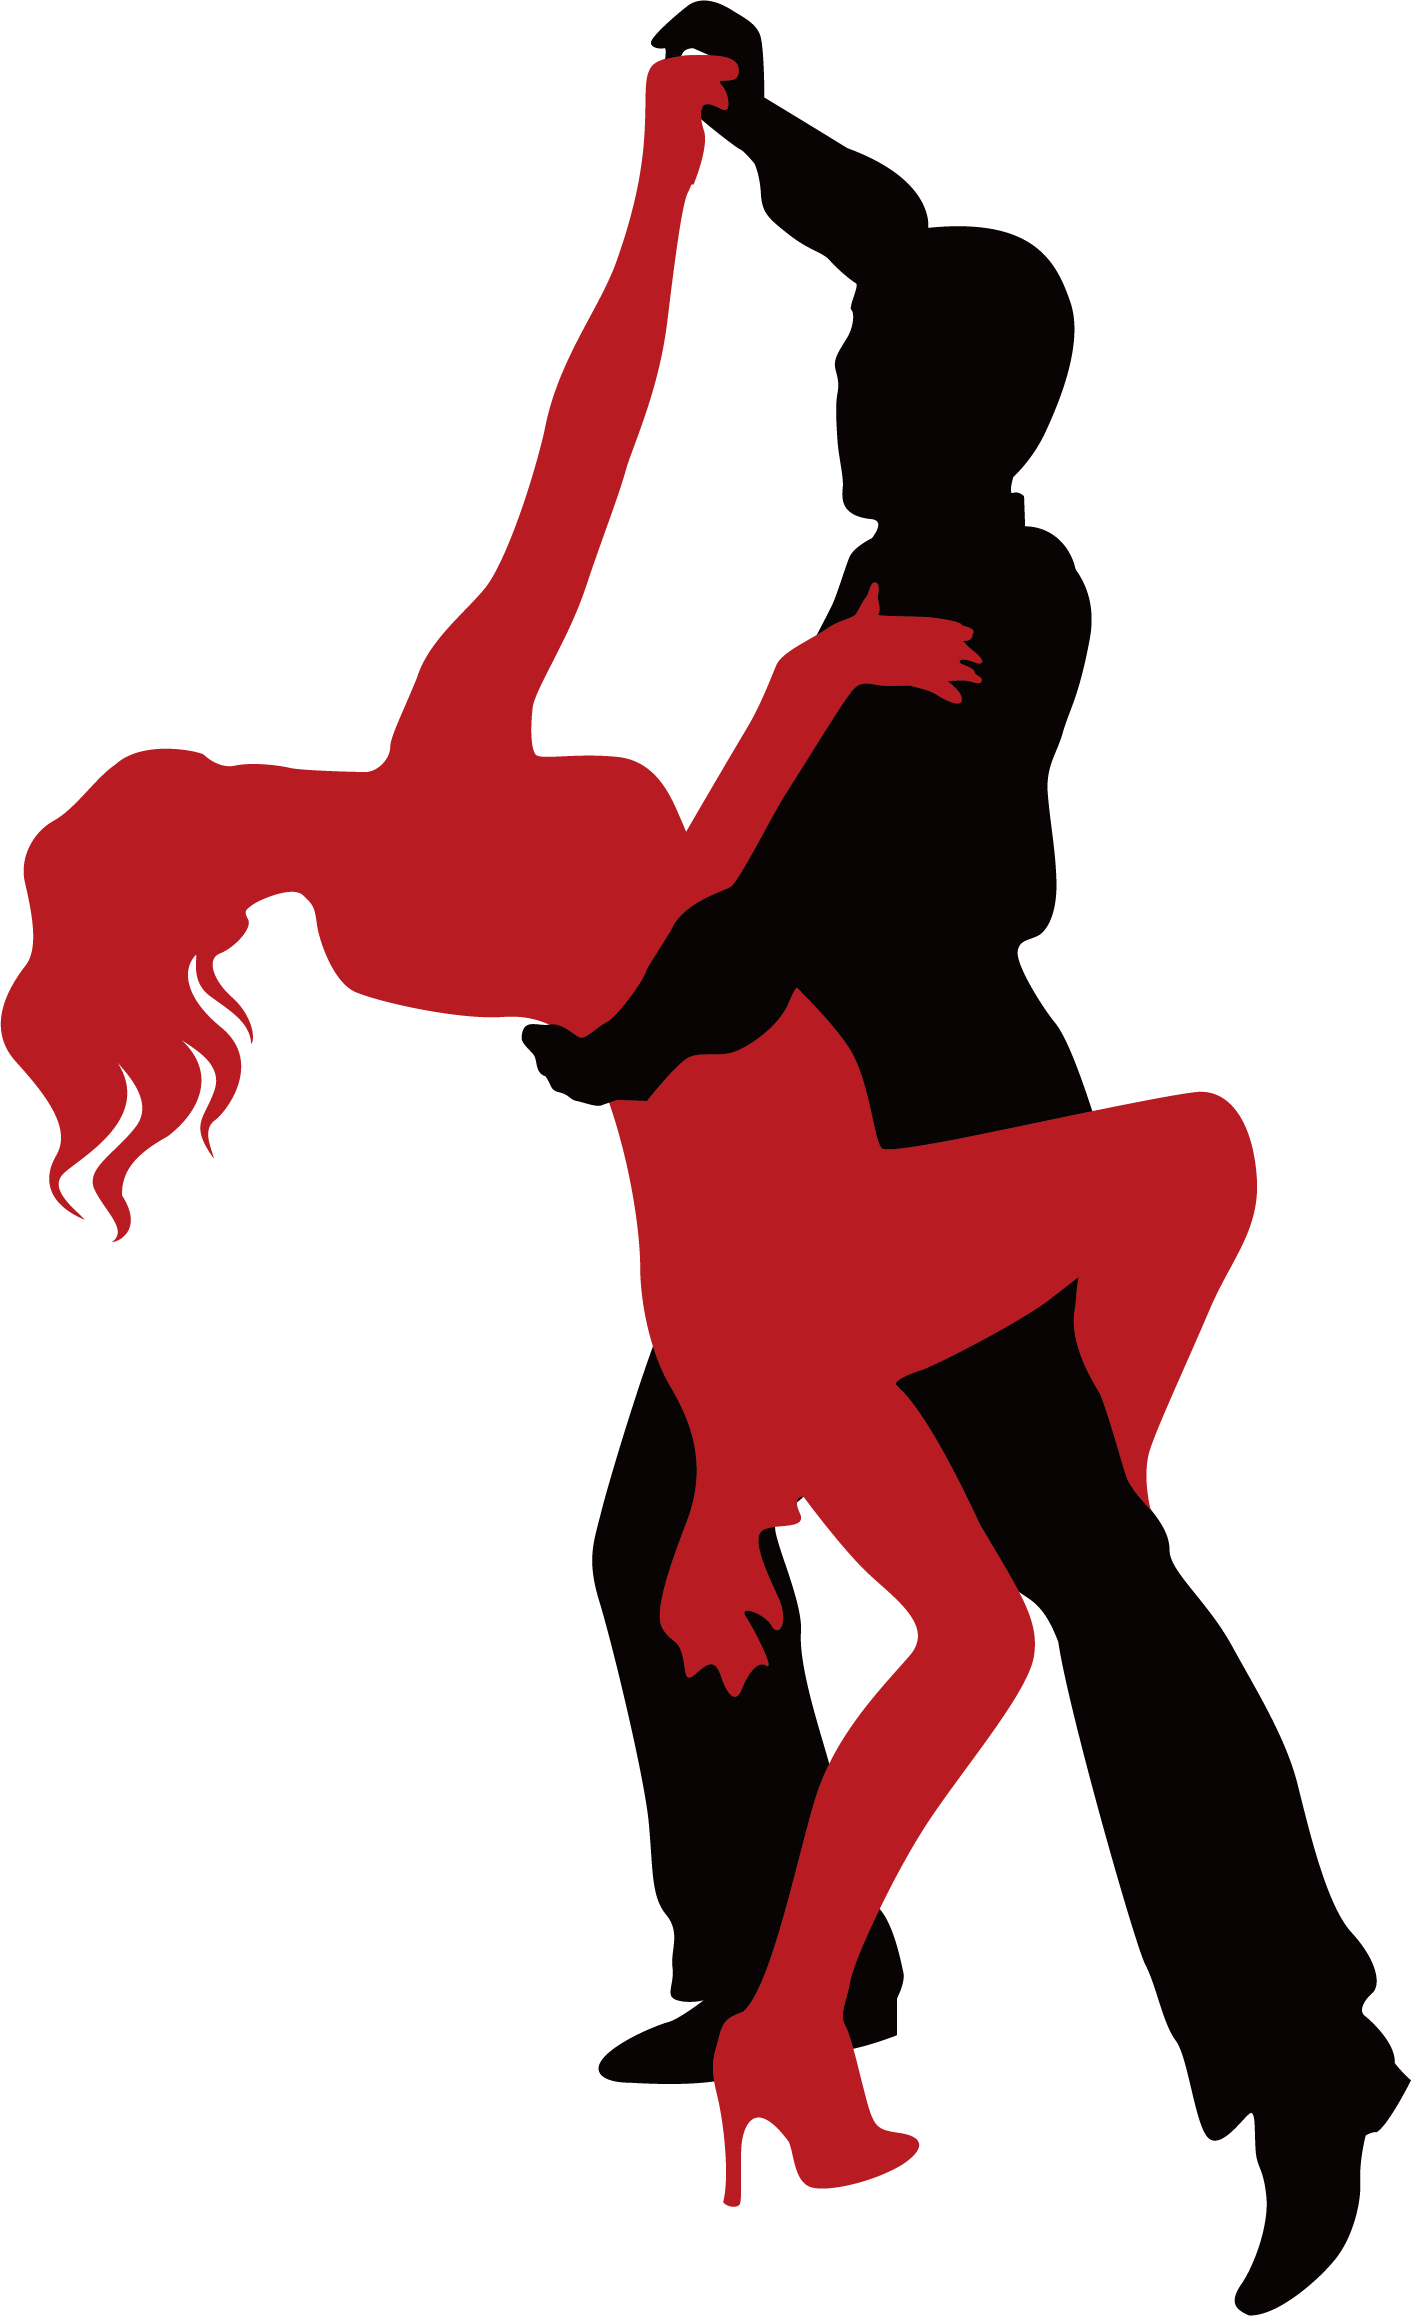 clipart library library Ballroom dance illustration free. Tango drawing easy